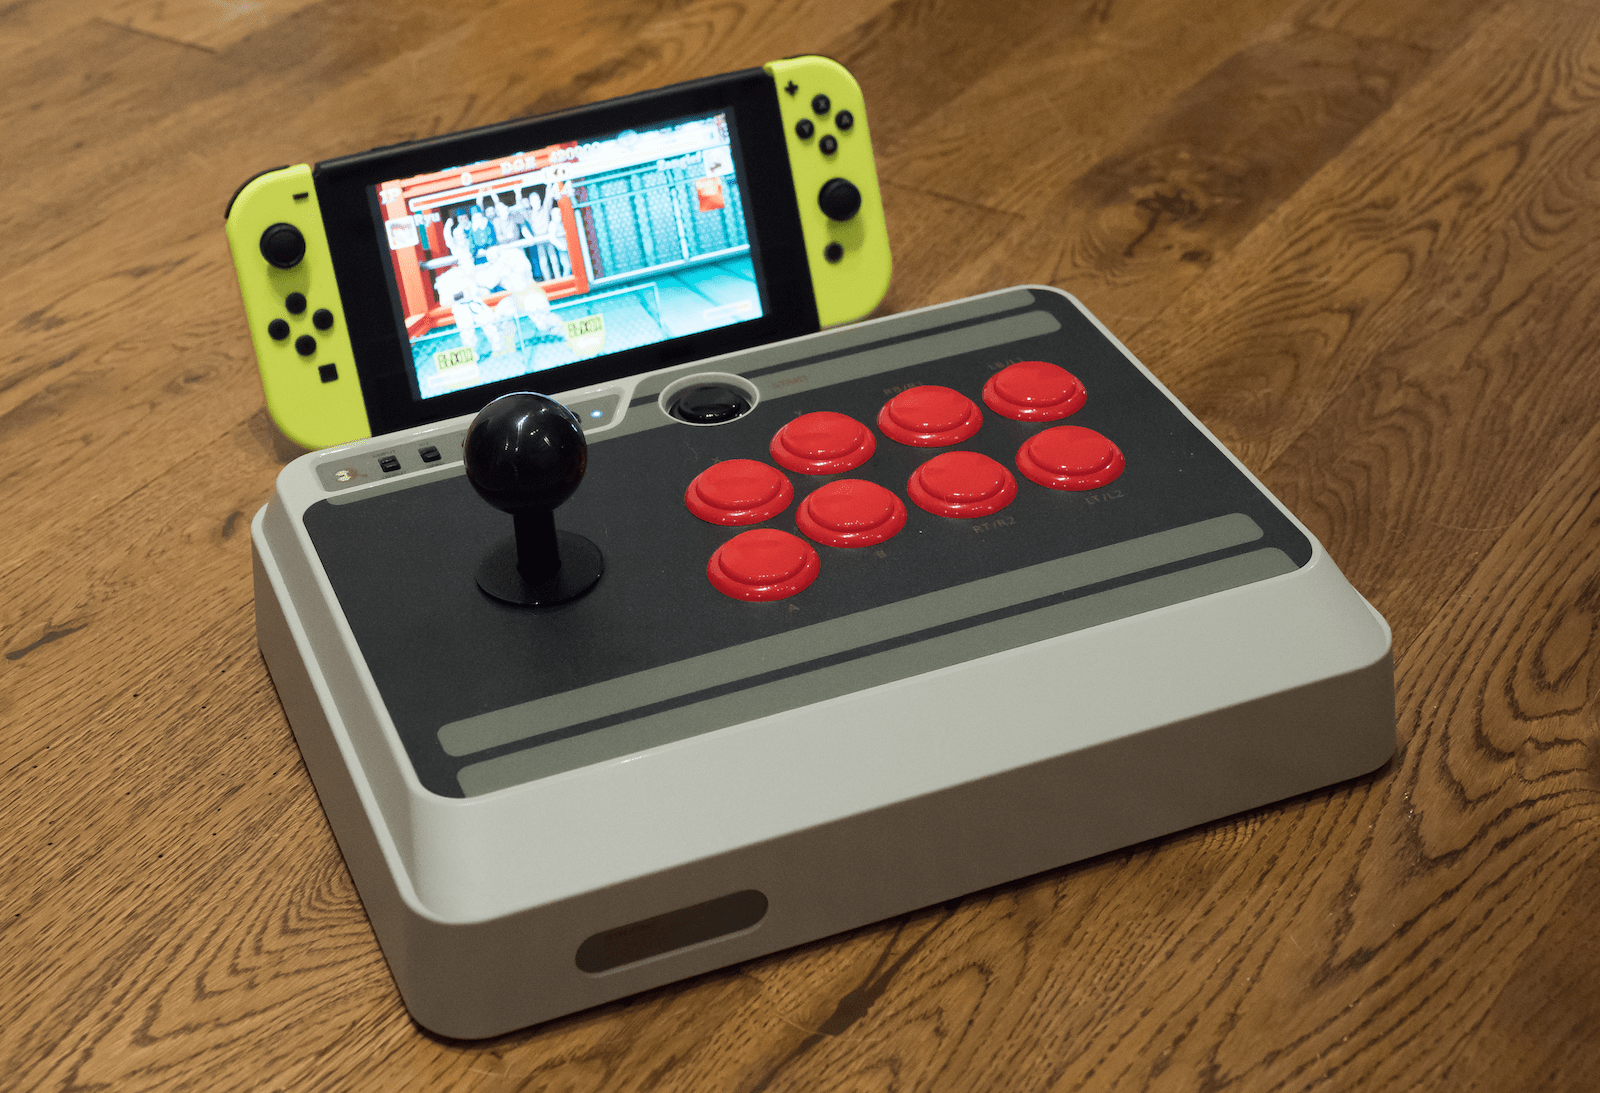 8Bitdo Nes30 Arcade Stick Supports Nintendo Switch